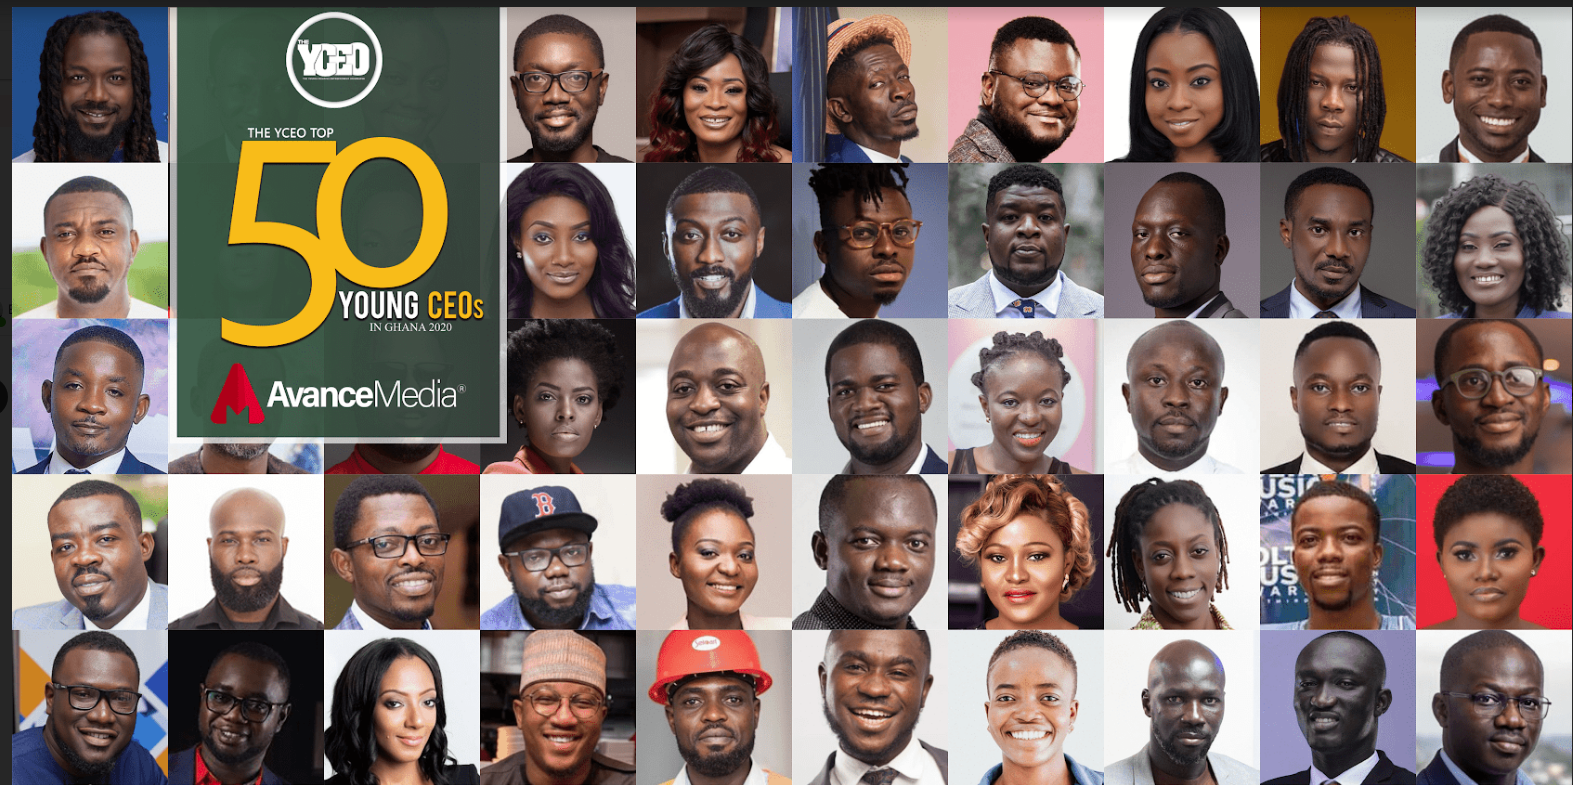 Shatta Wale, Stonebwoy & Samini named among 2020 Top 50 Young CEOs in Ghana